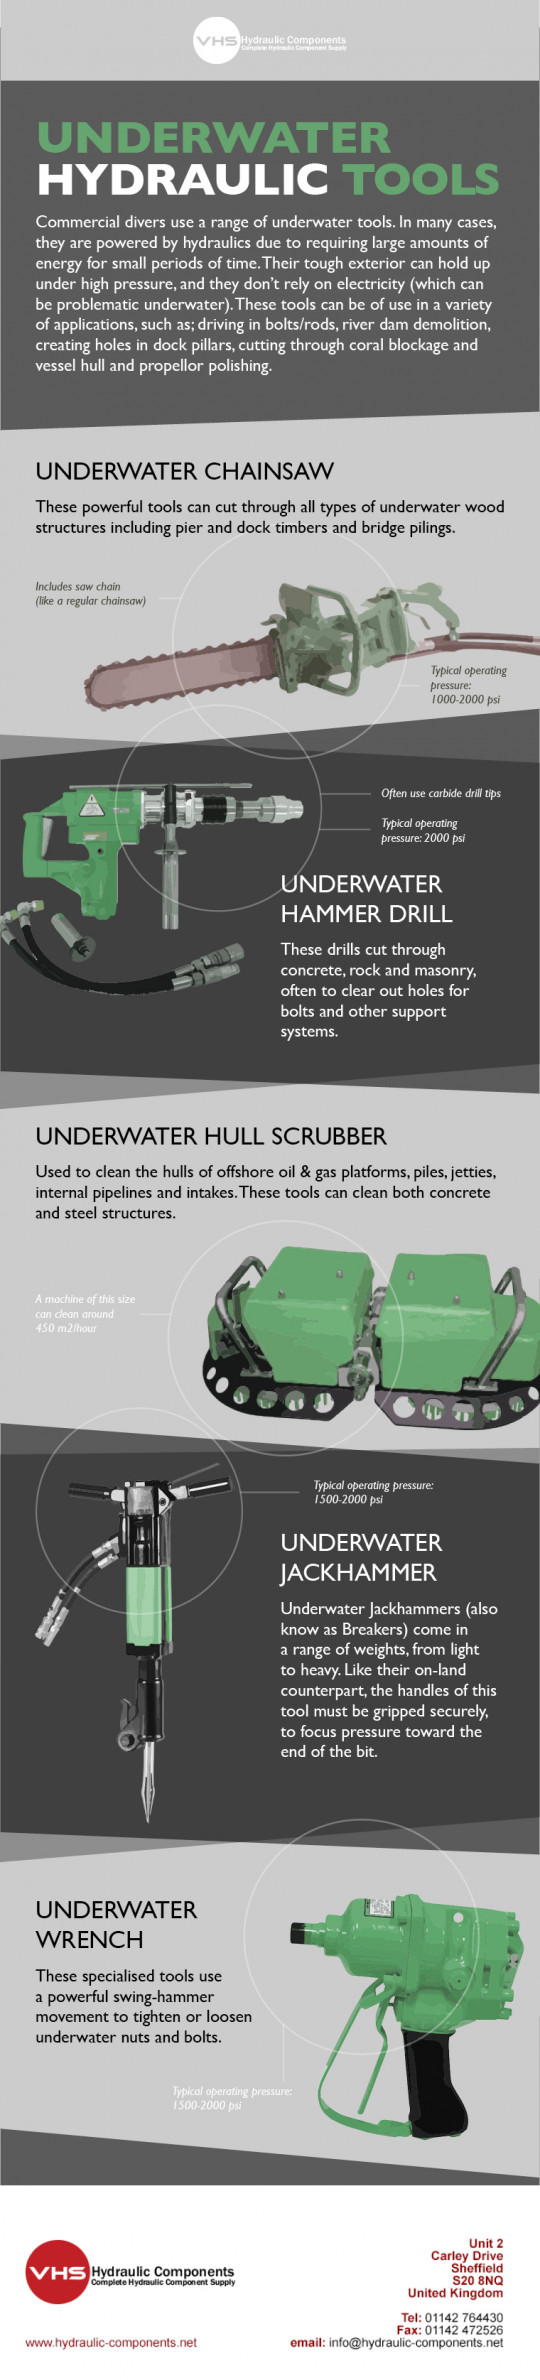 Underwater Hydraulic Tools